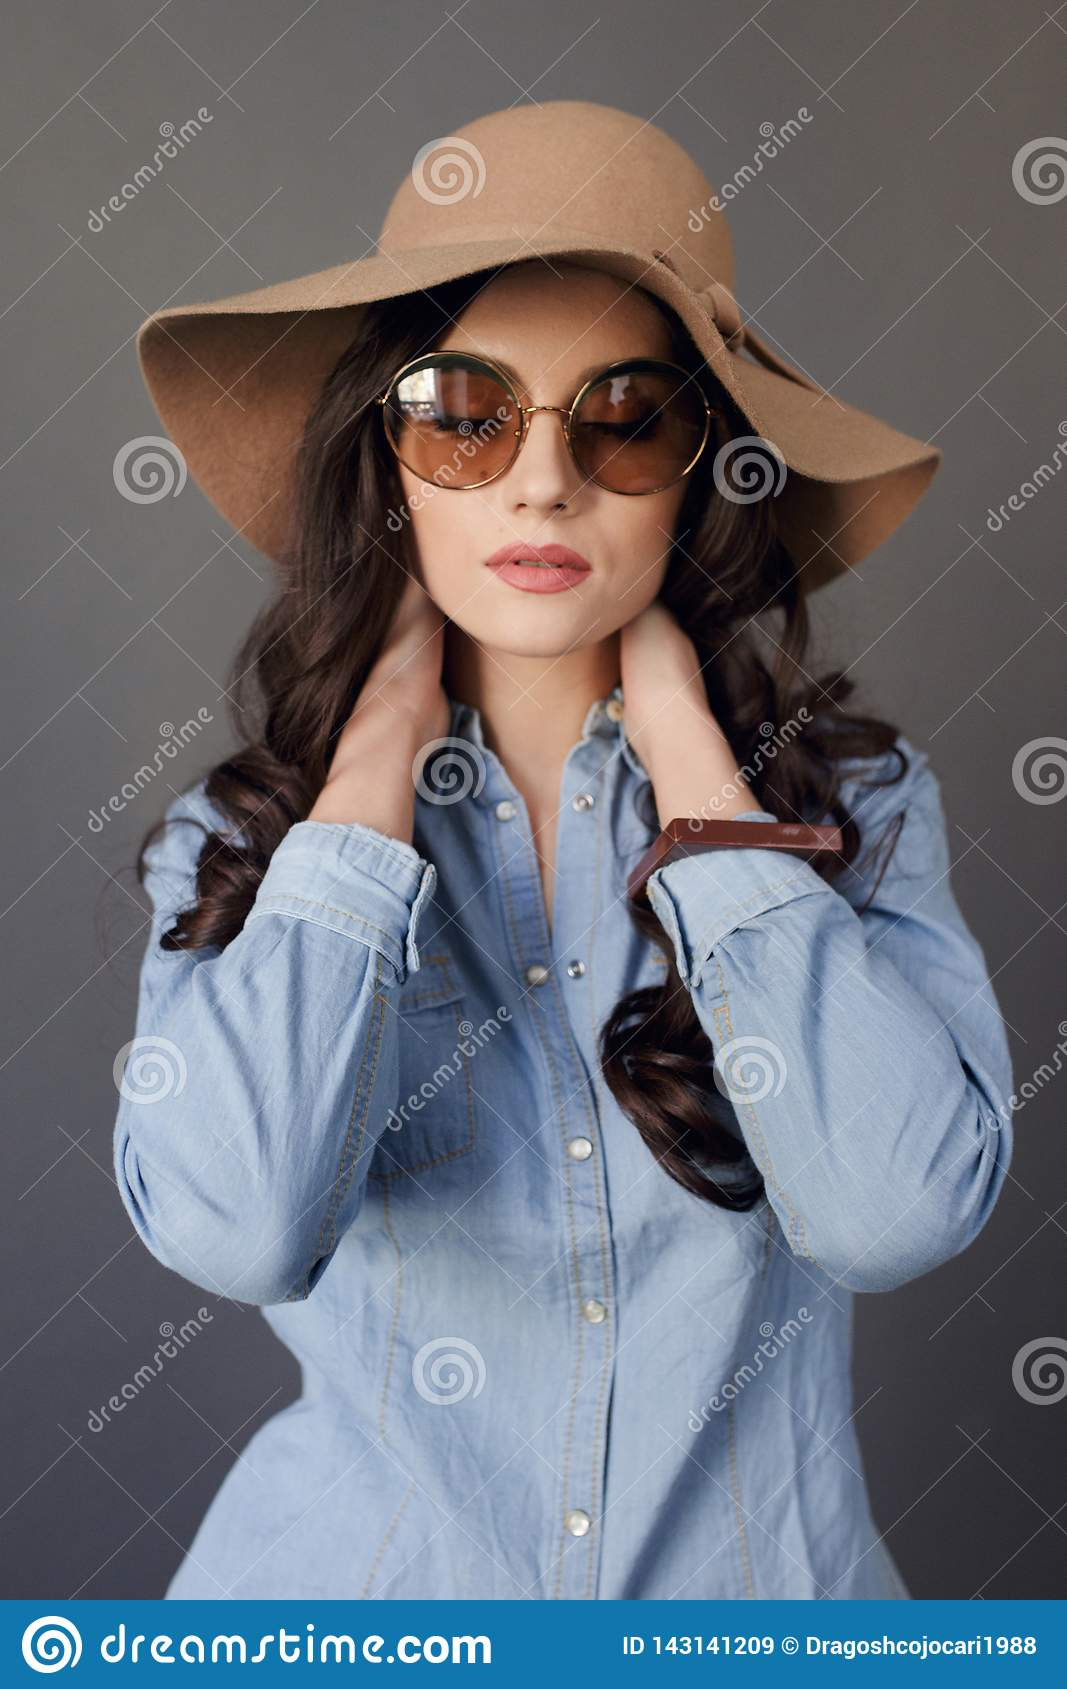 Sensual brunette model with round sunglasses, curly hair, wearing in jeans shirt and beige hat, touches his neck.